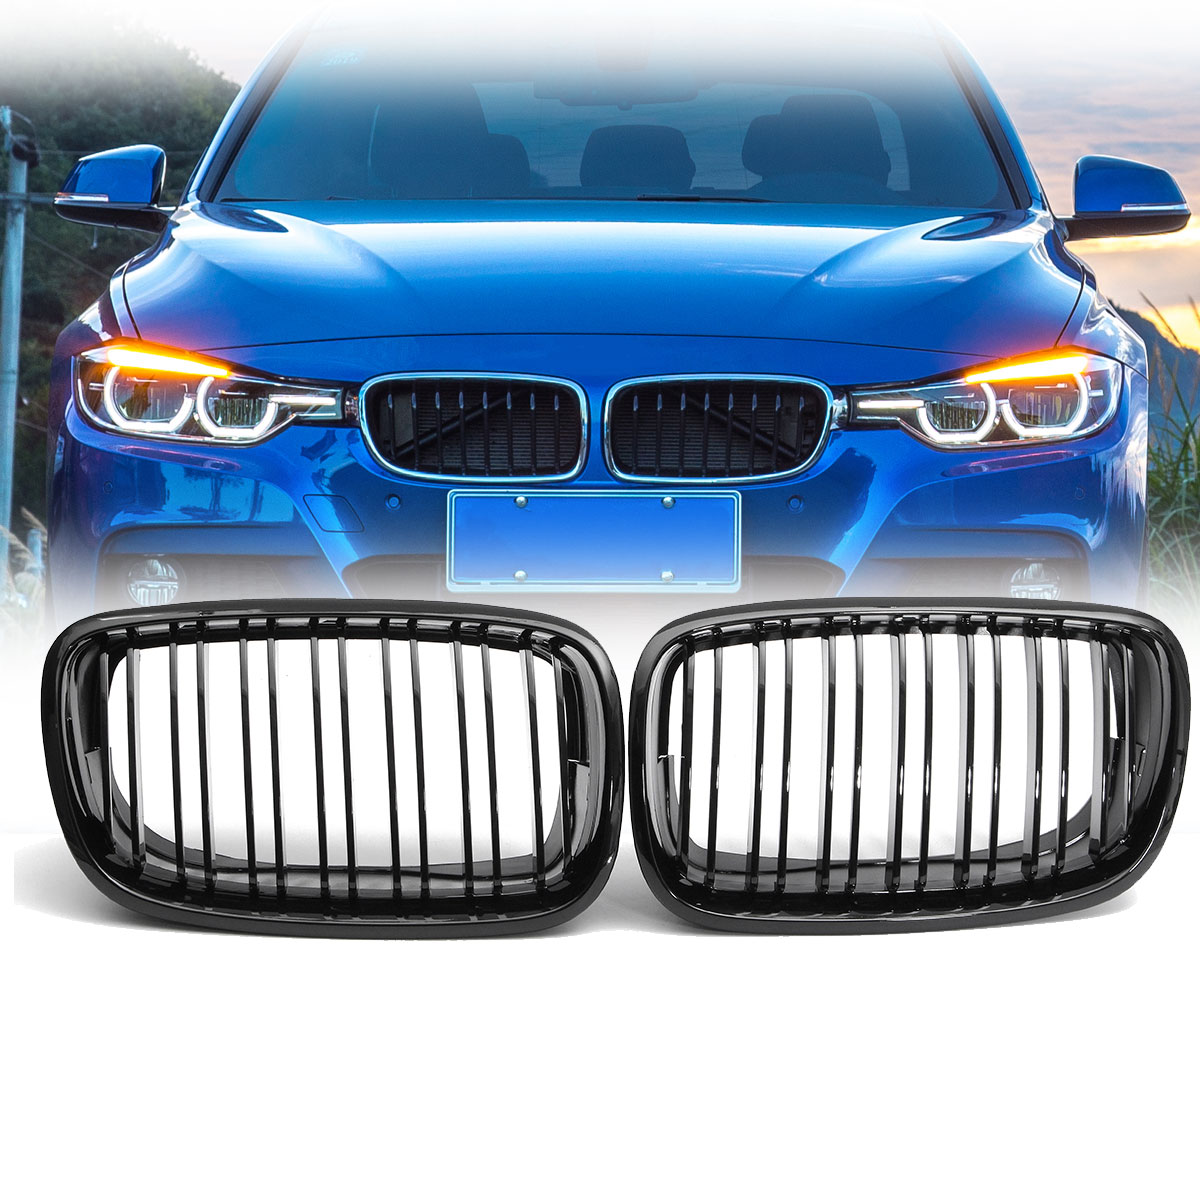 Pair Matte/Gloss Black Double Slat Kidney Grille Front Grill For BMW X5 X6 E70 E71 2007 2013 Car Styling Racing Grills